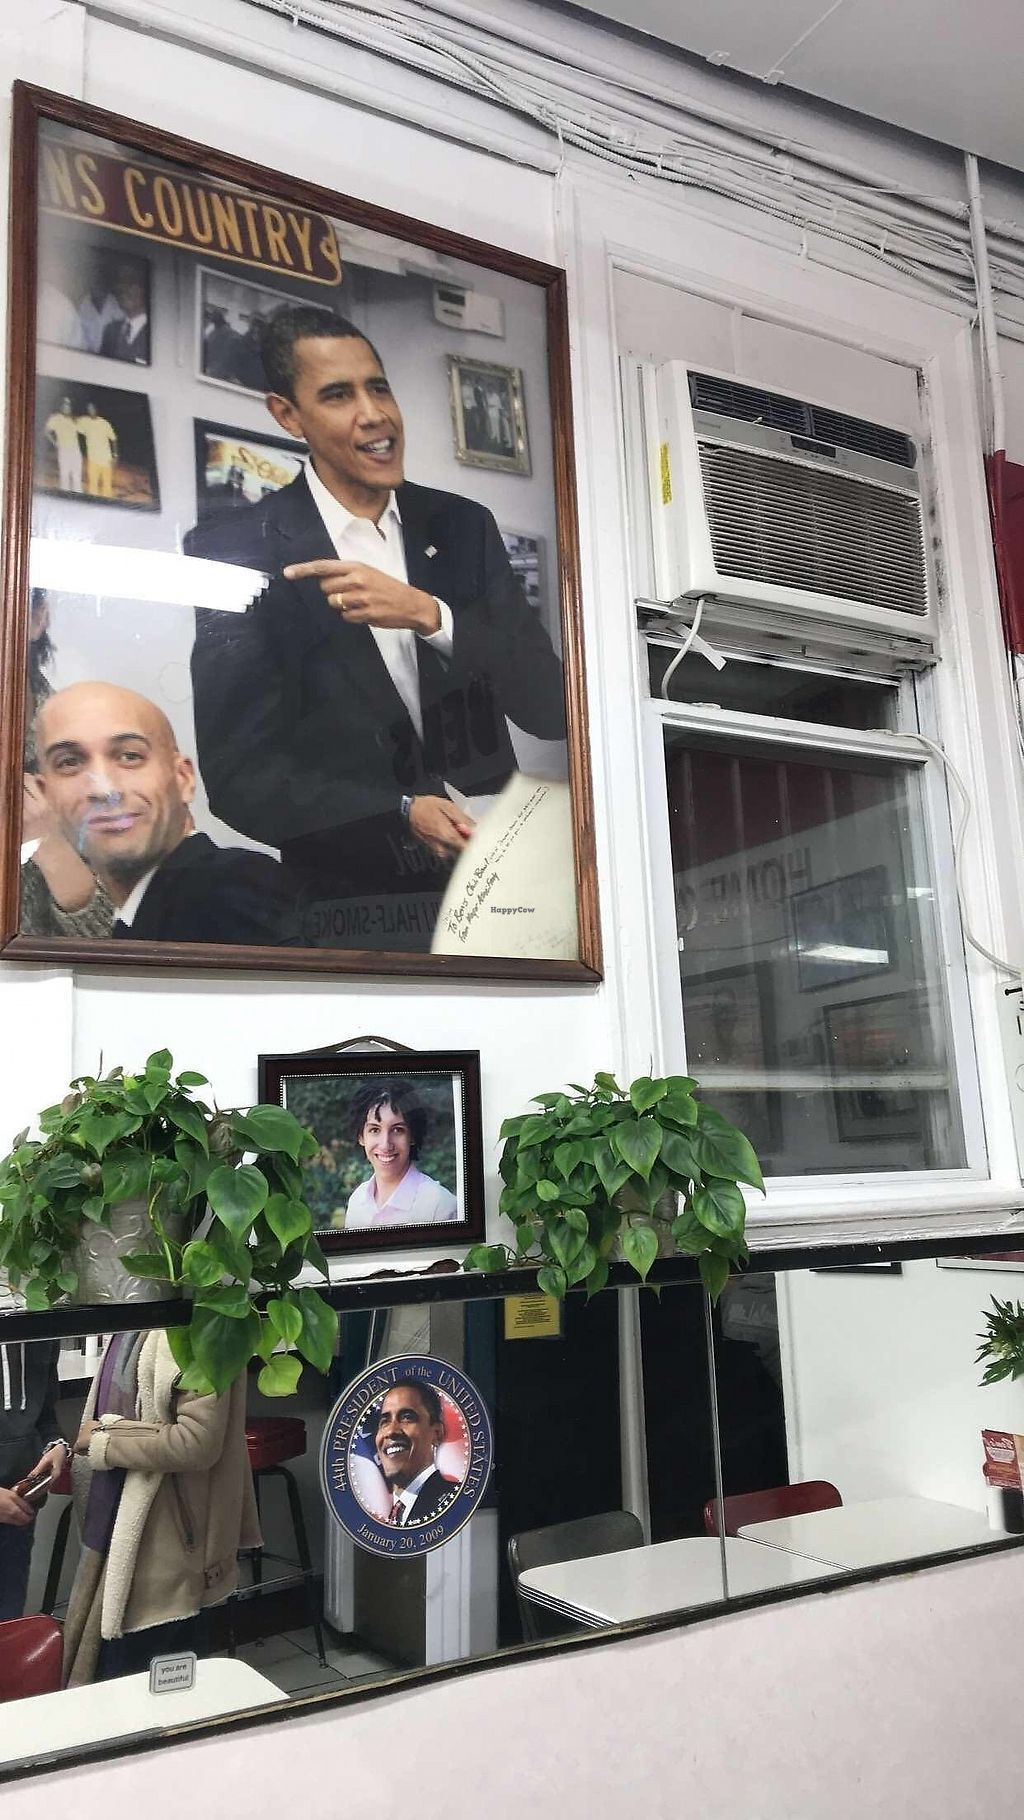 """Photo of Ben's Chili Bowl  by <a href=""""/members/profile/20daisy00"""">20daisy00</a> <br/>Obama portrate above the table he famously ate at, after winning the '08 election <br/> February 25, 2018  - <a href='/contact/abuse/image/52127/363695'>Report</a>"""